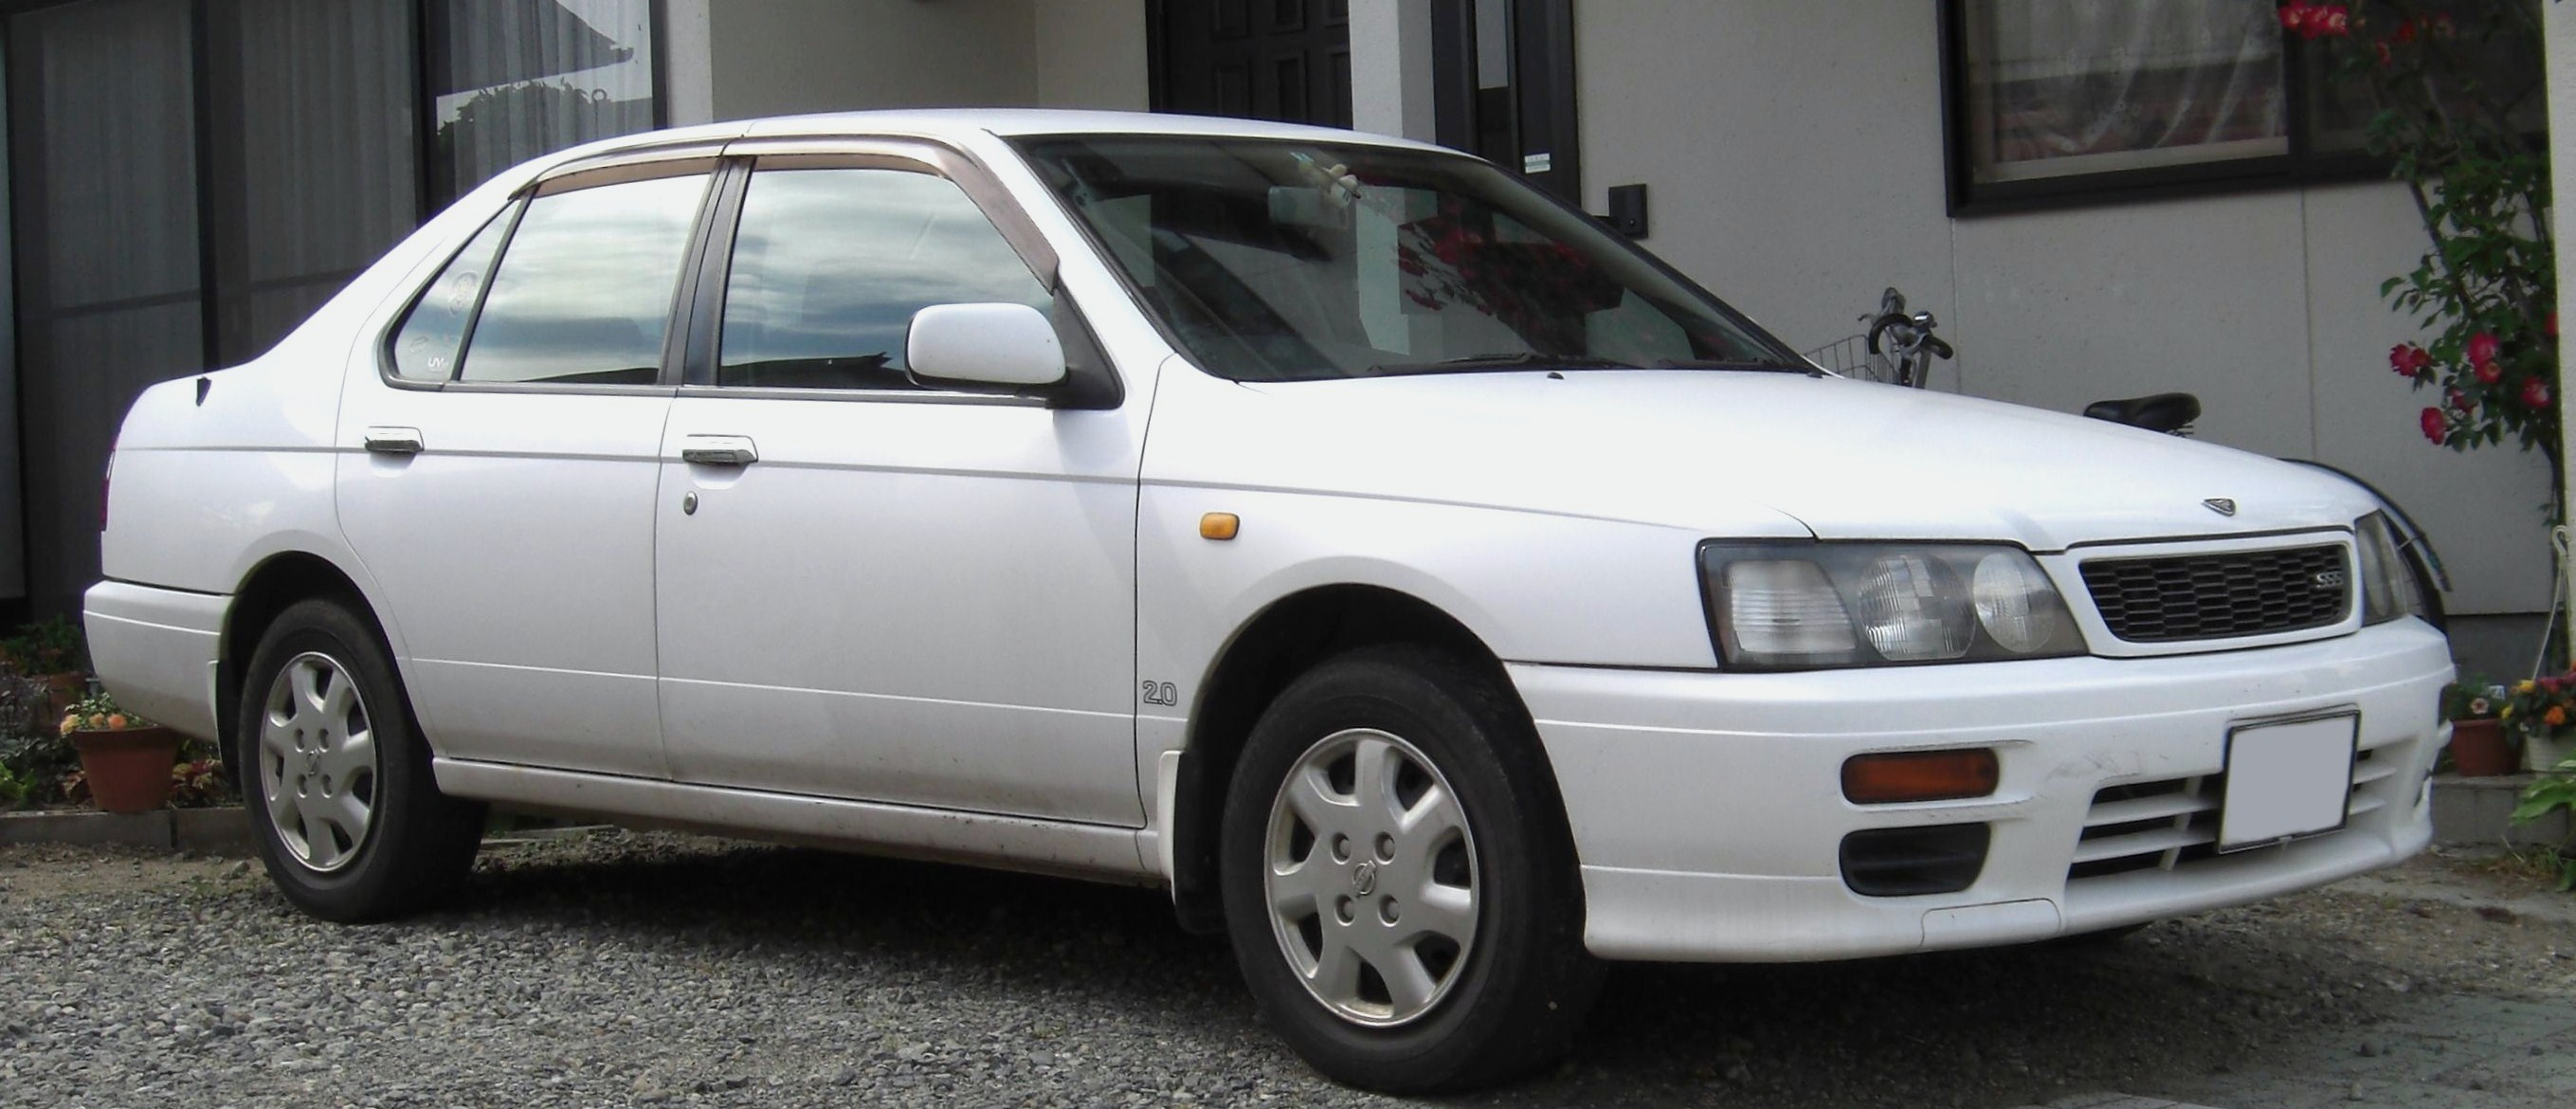 Nissan Bluebird - Wikipedia